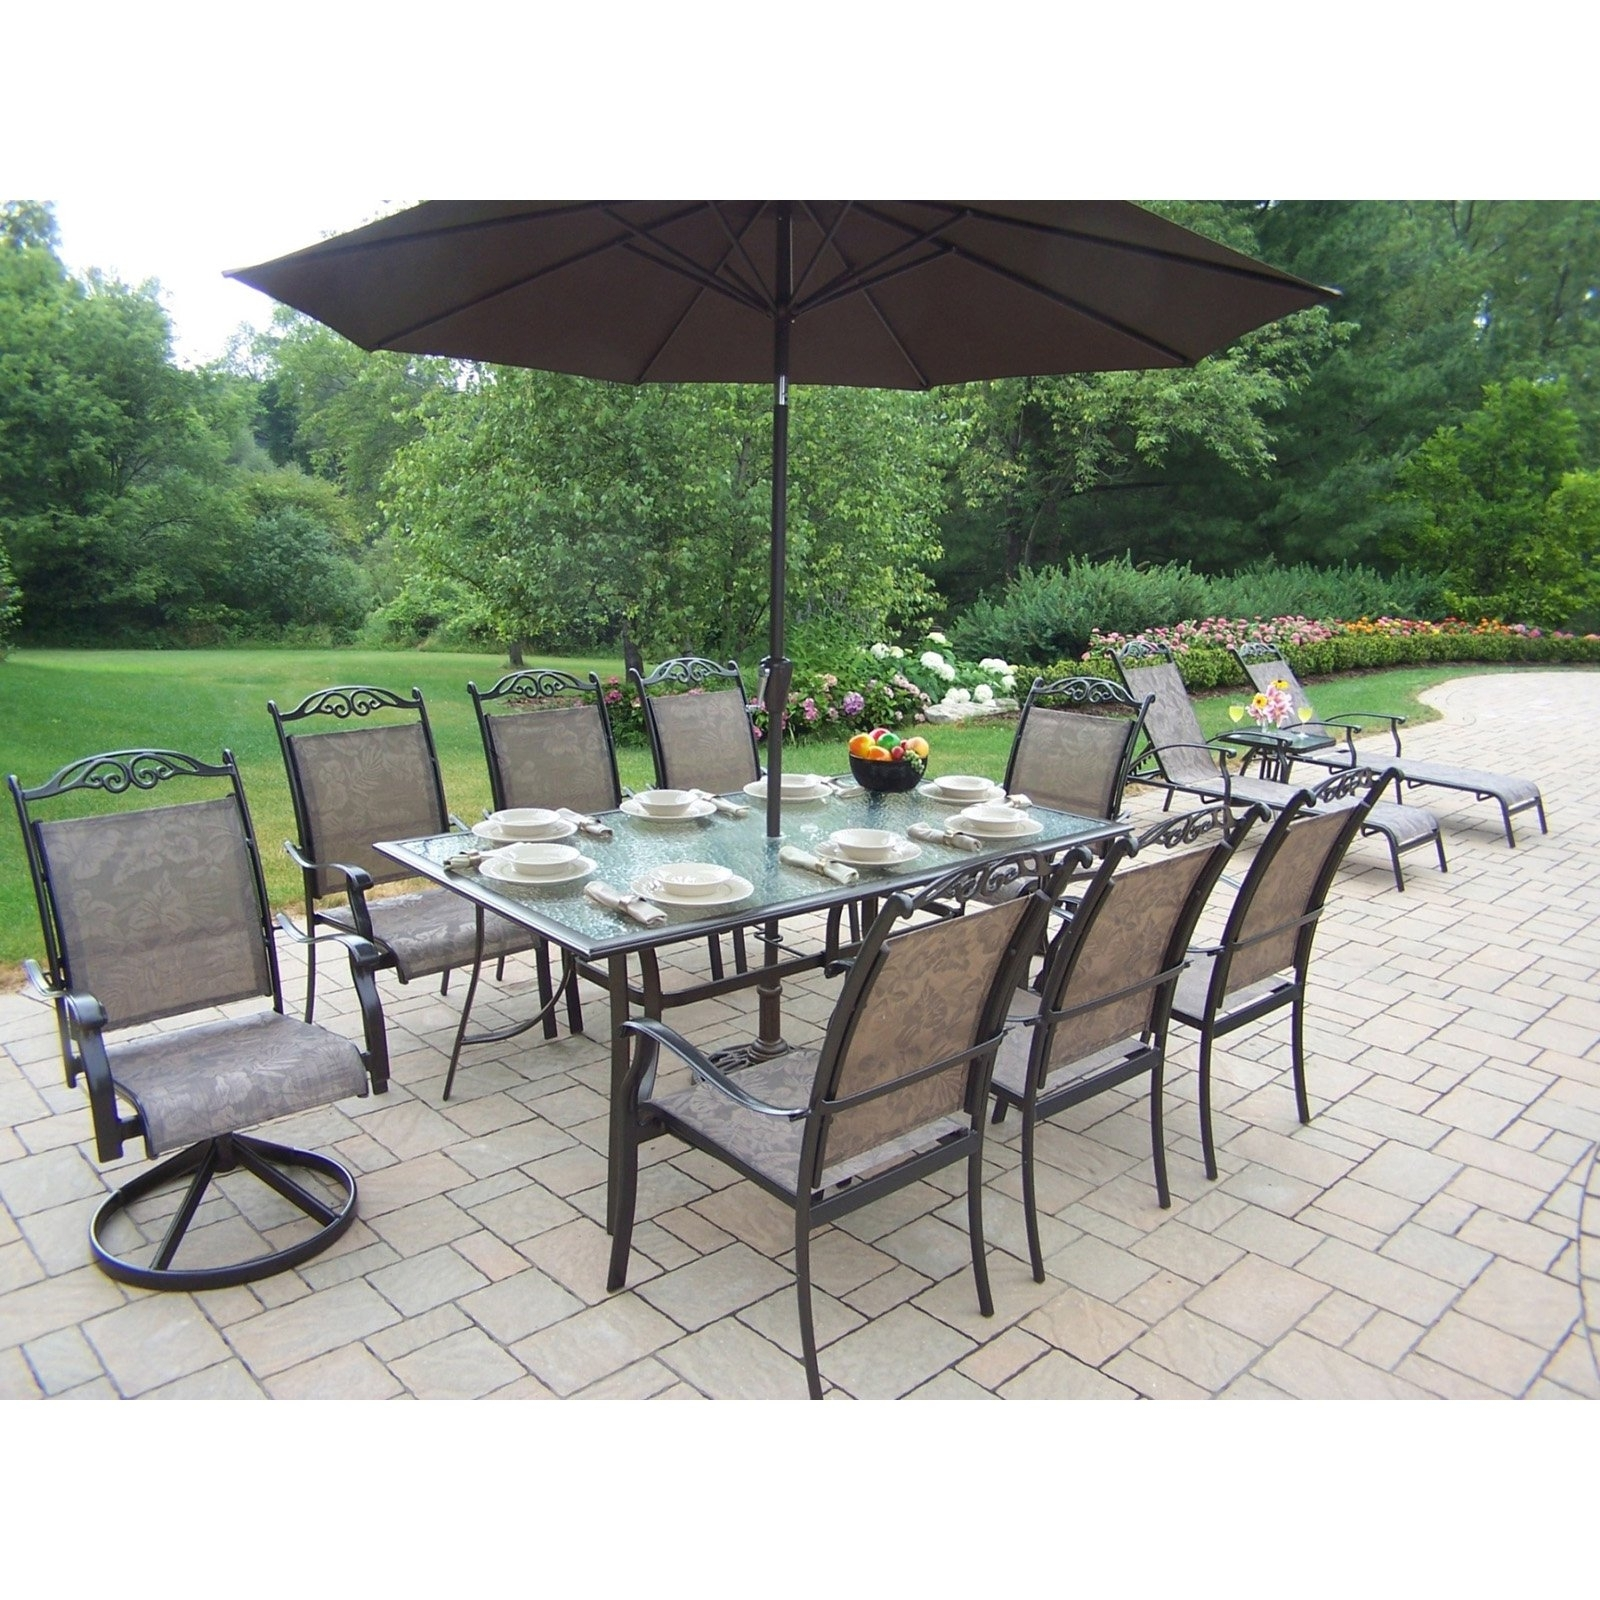 Patio Table Sets With Umbrellas Within Well Known Patio Furniture Walmart Patio Furniture Sets Patio Dining Luxury (View 18 of 20)